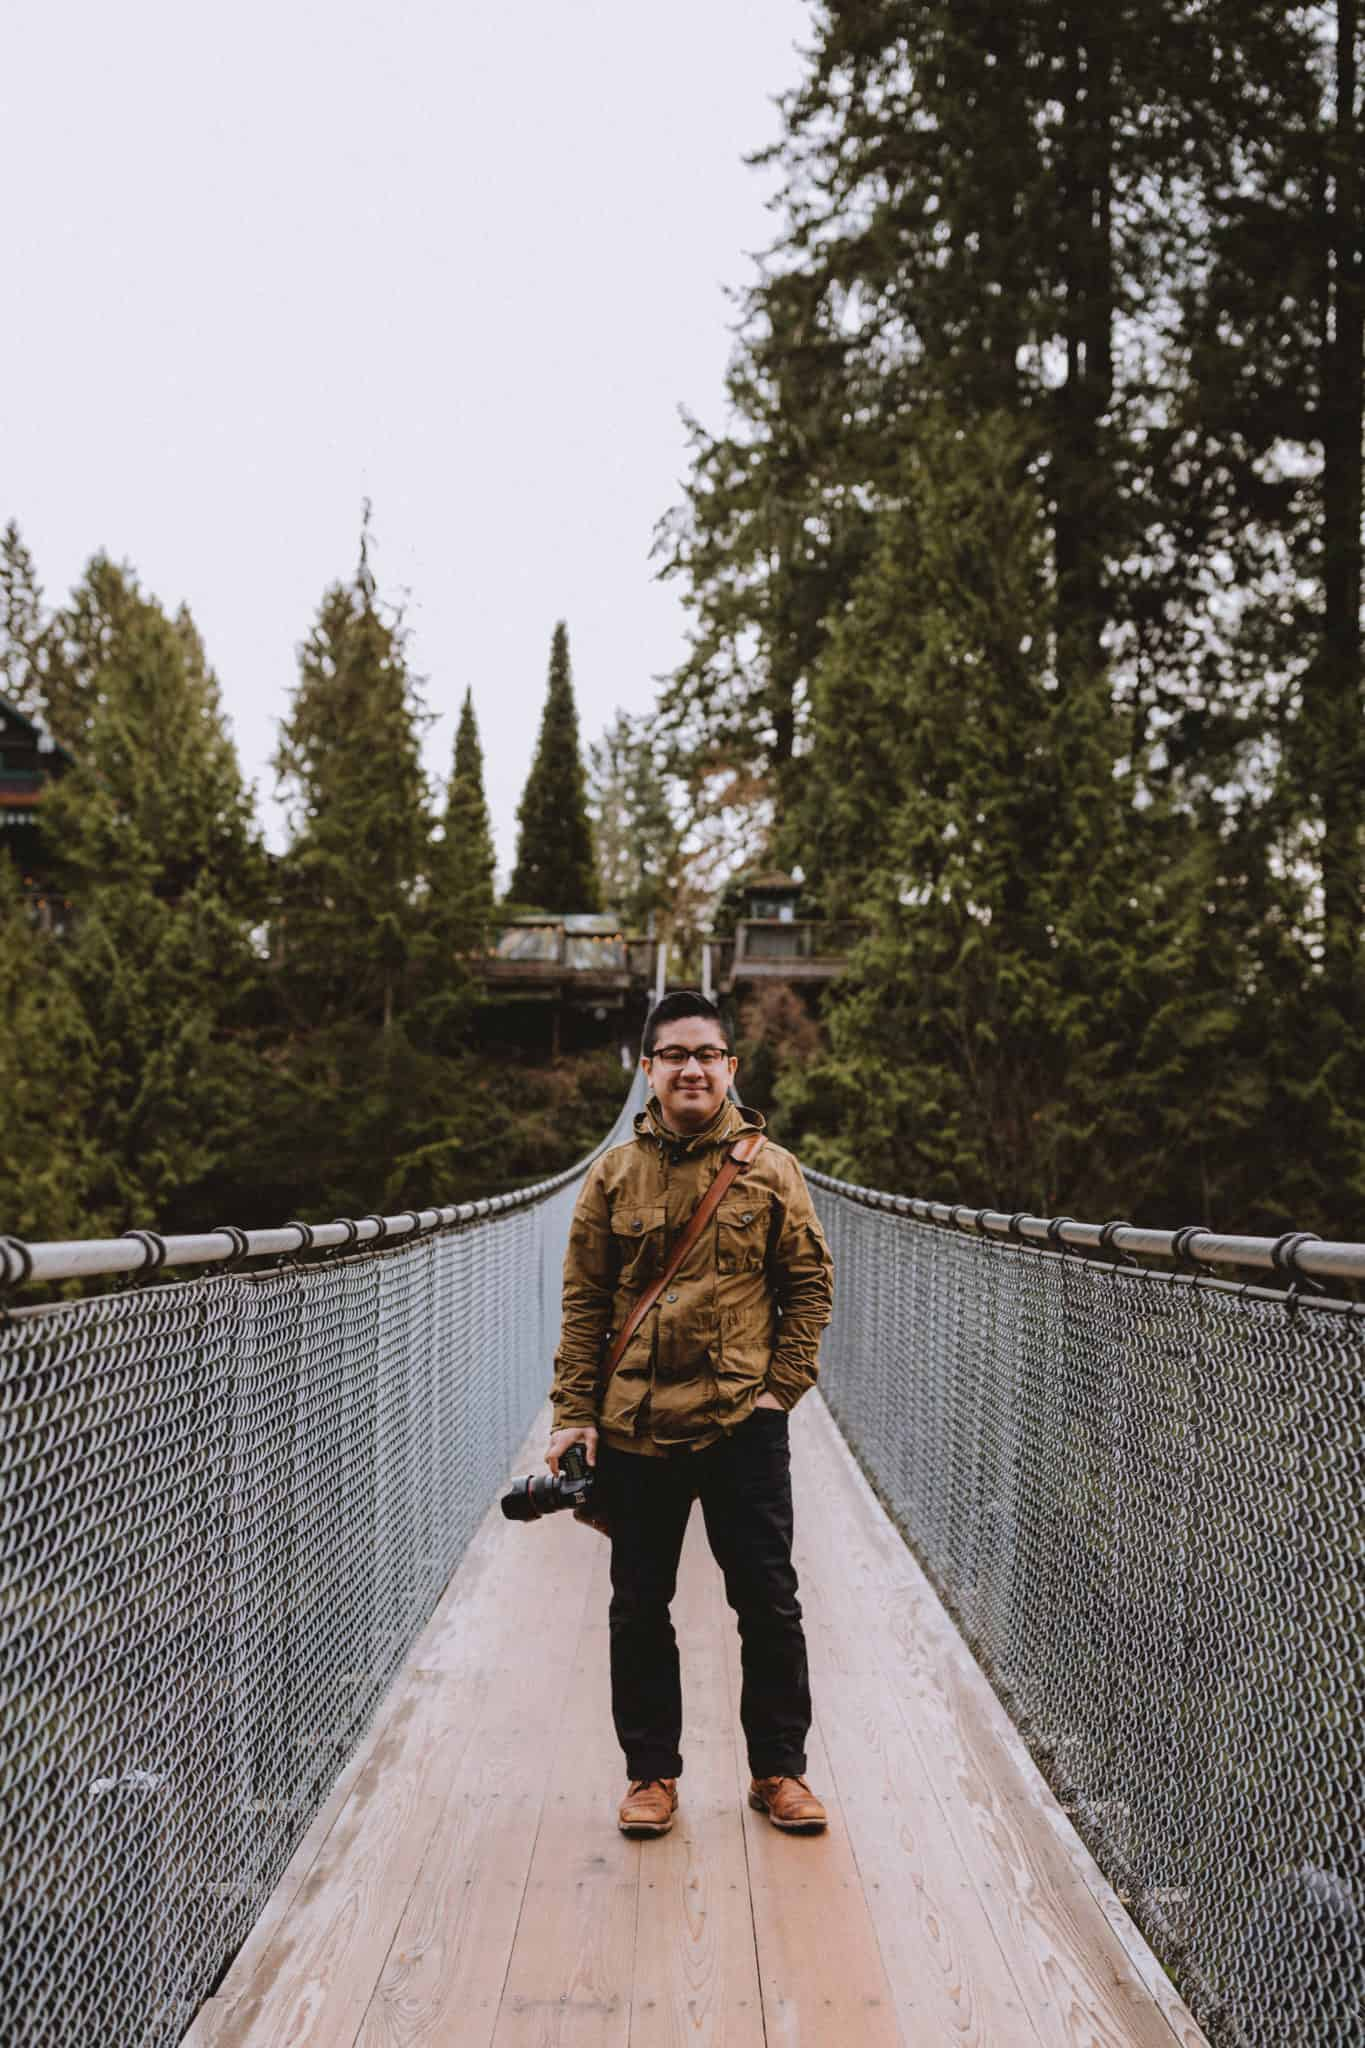 Jonathan Gipaya at Capilano Suspension Bridge Park